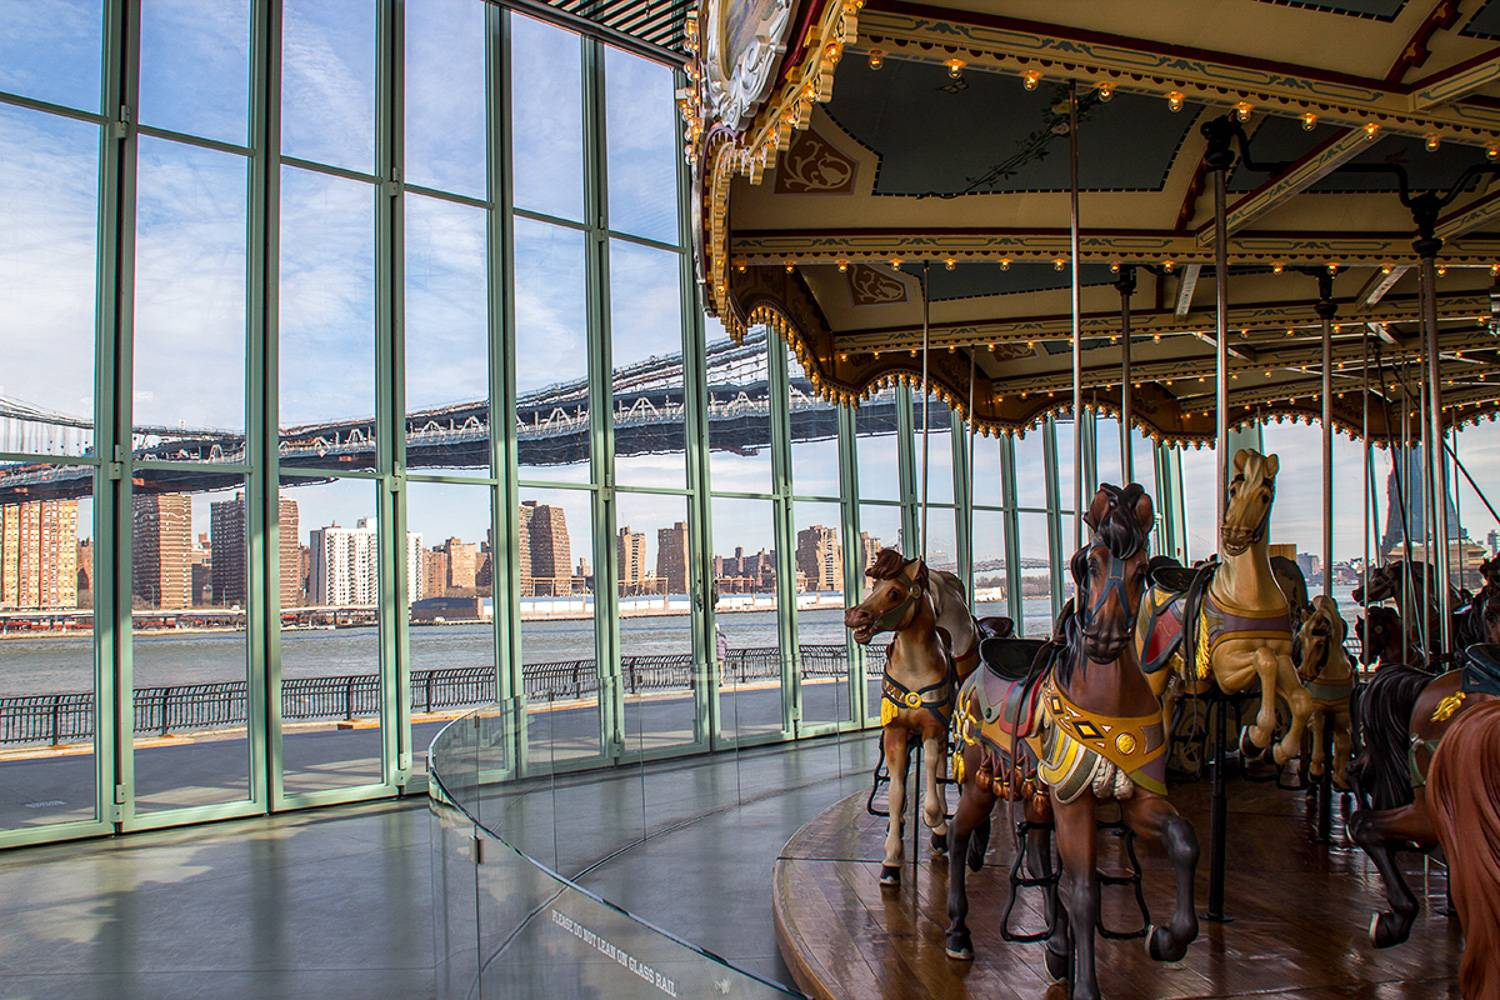 Image of Jane's Carousel in Brooklyn with views of the New York City skyline.